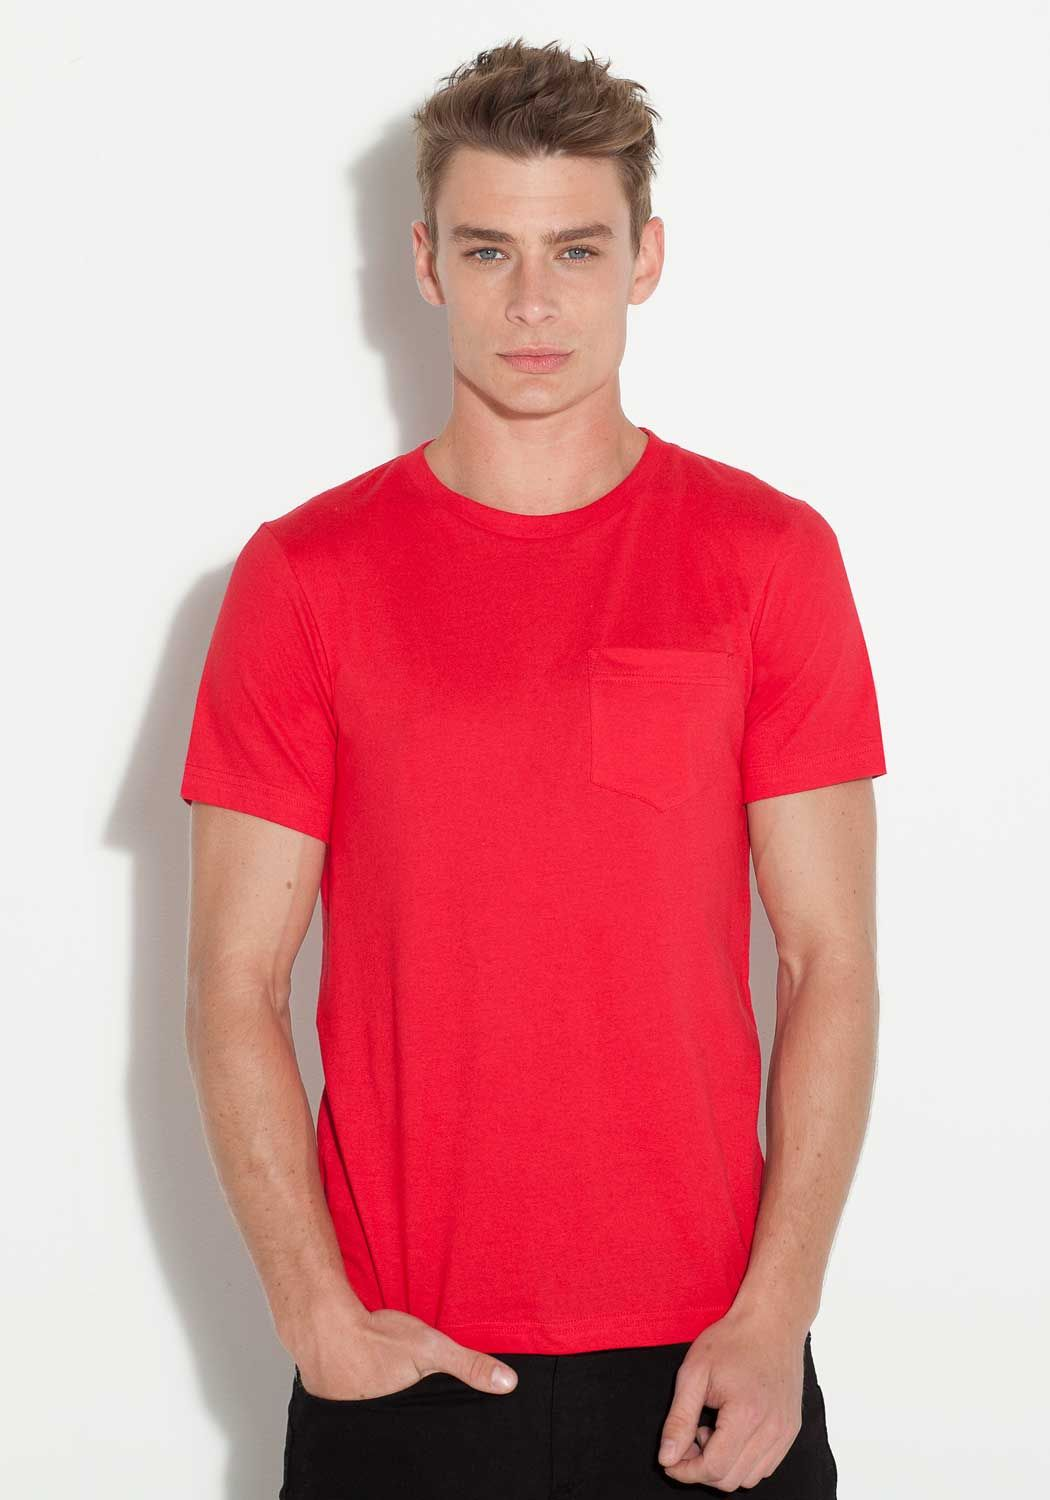 Active wear and casual clothing for men jersey pocket tee stylin